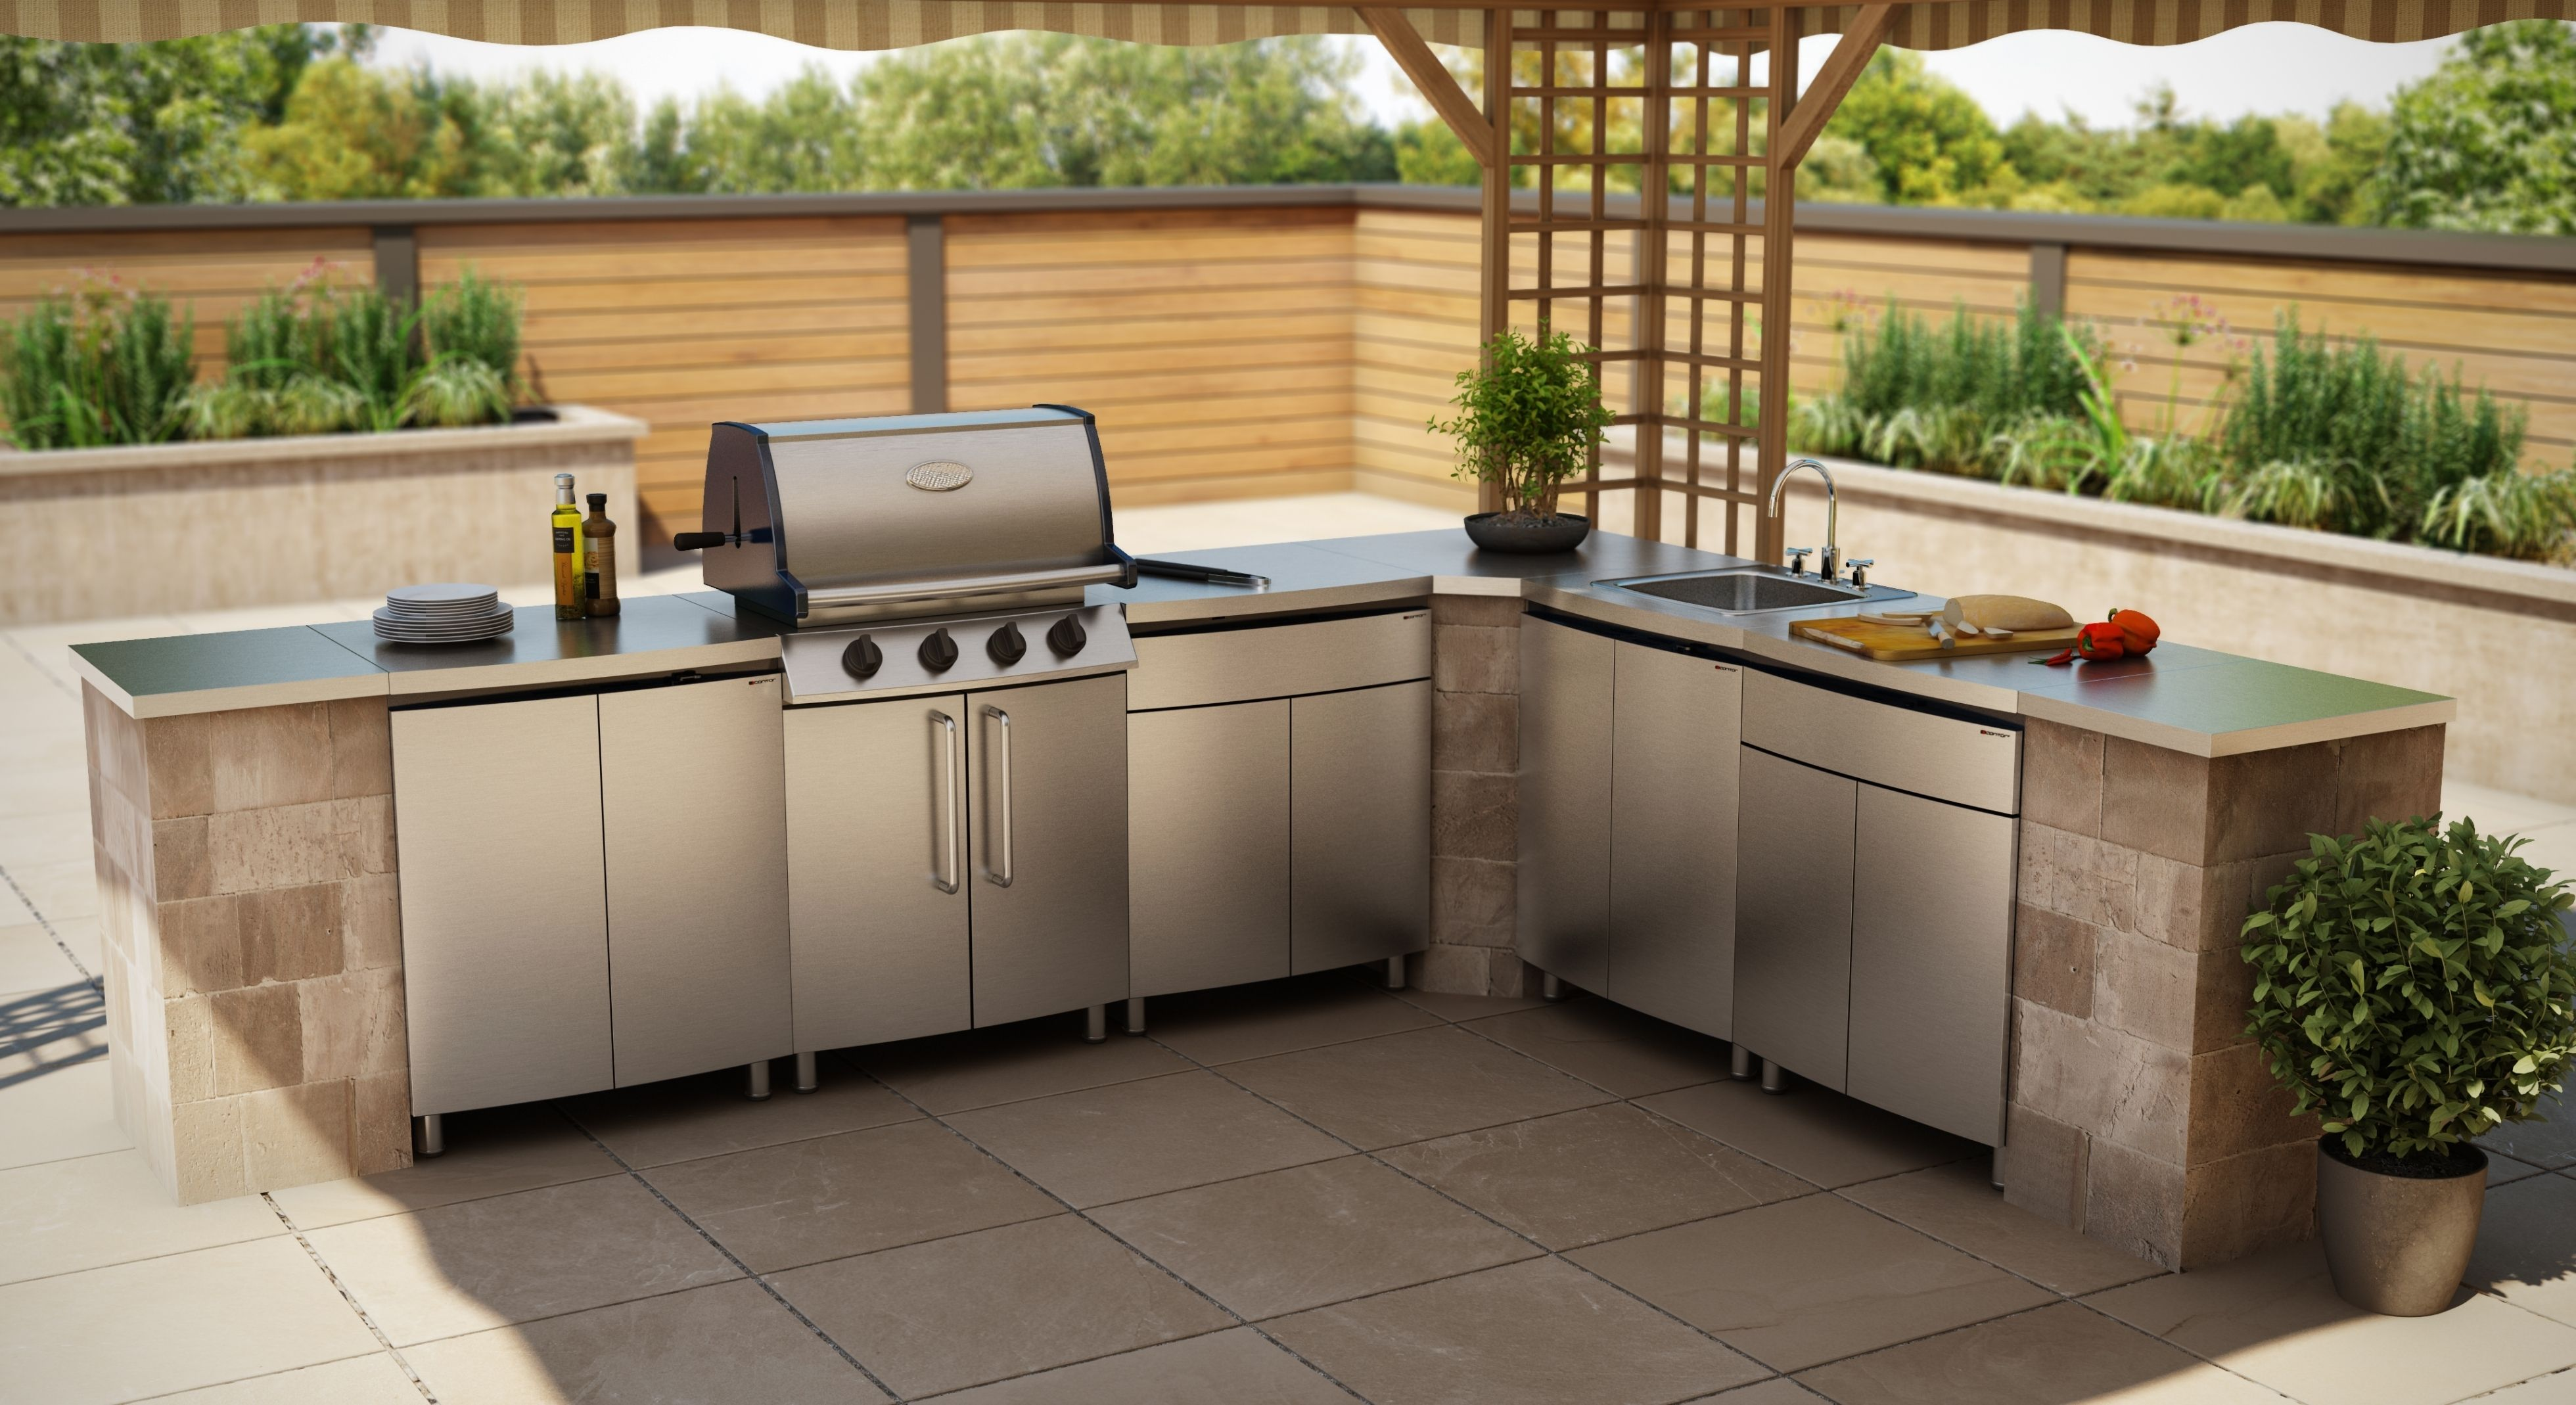 Stainless Steel Outdoor Kitchen Cabinets Outdoor Kitchen Outdoor Kitchen Design Kitchen Countertops